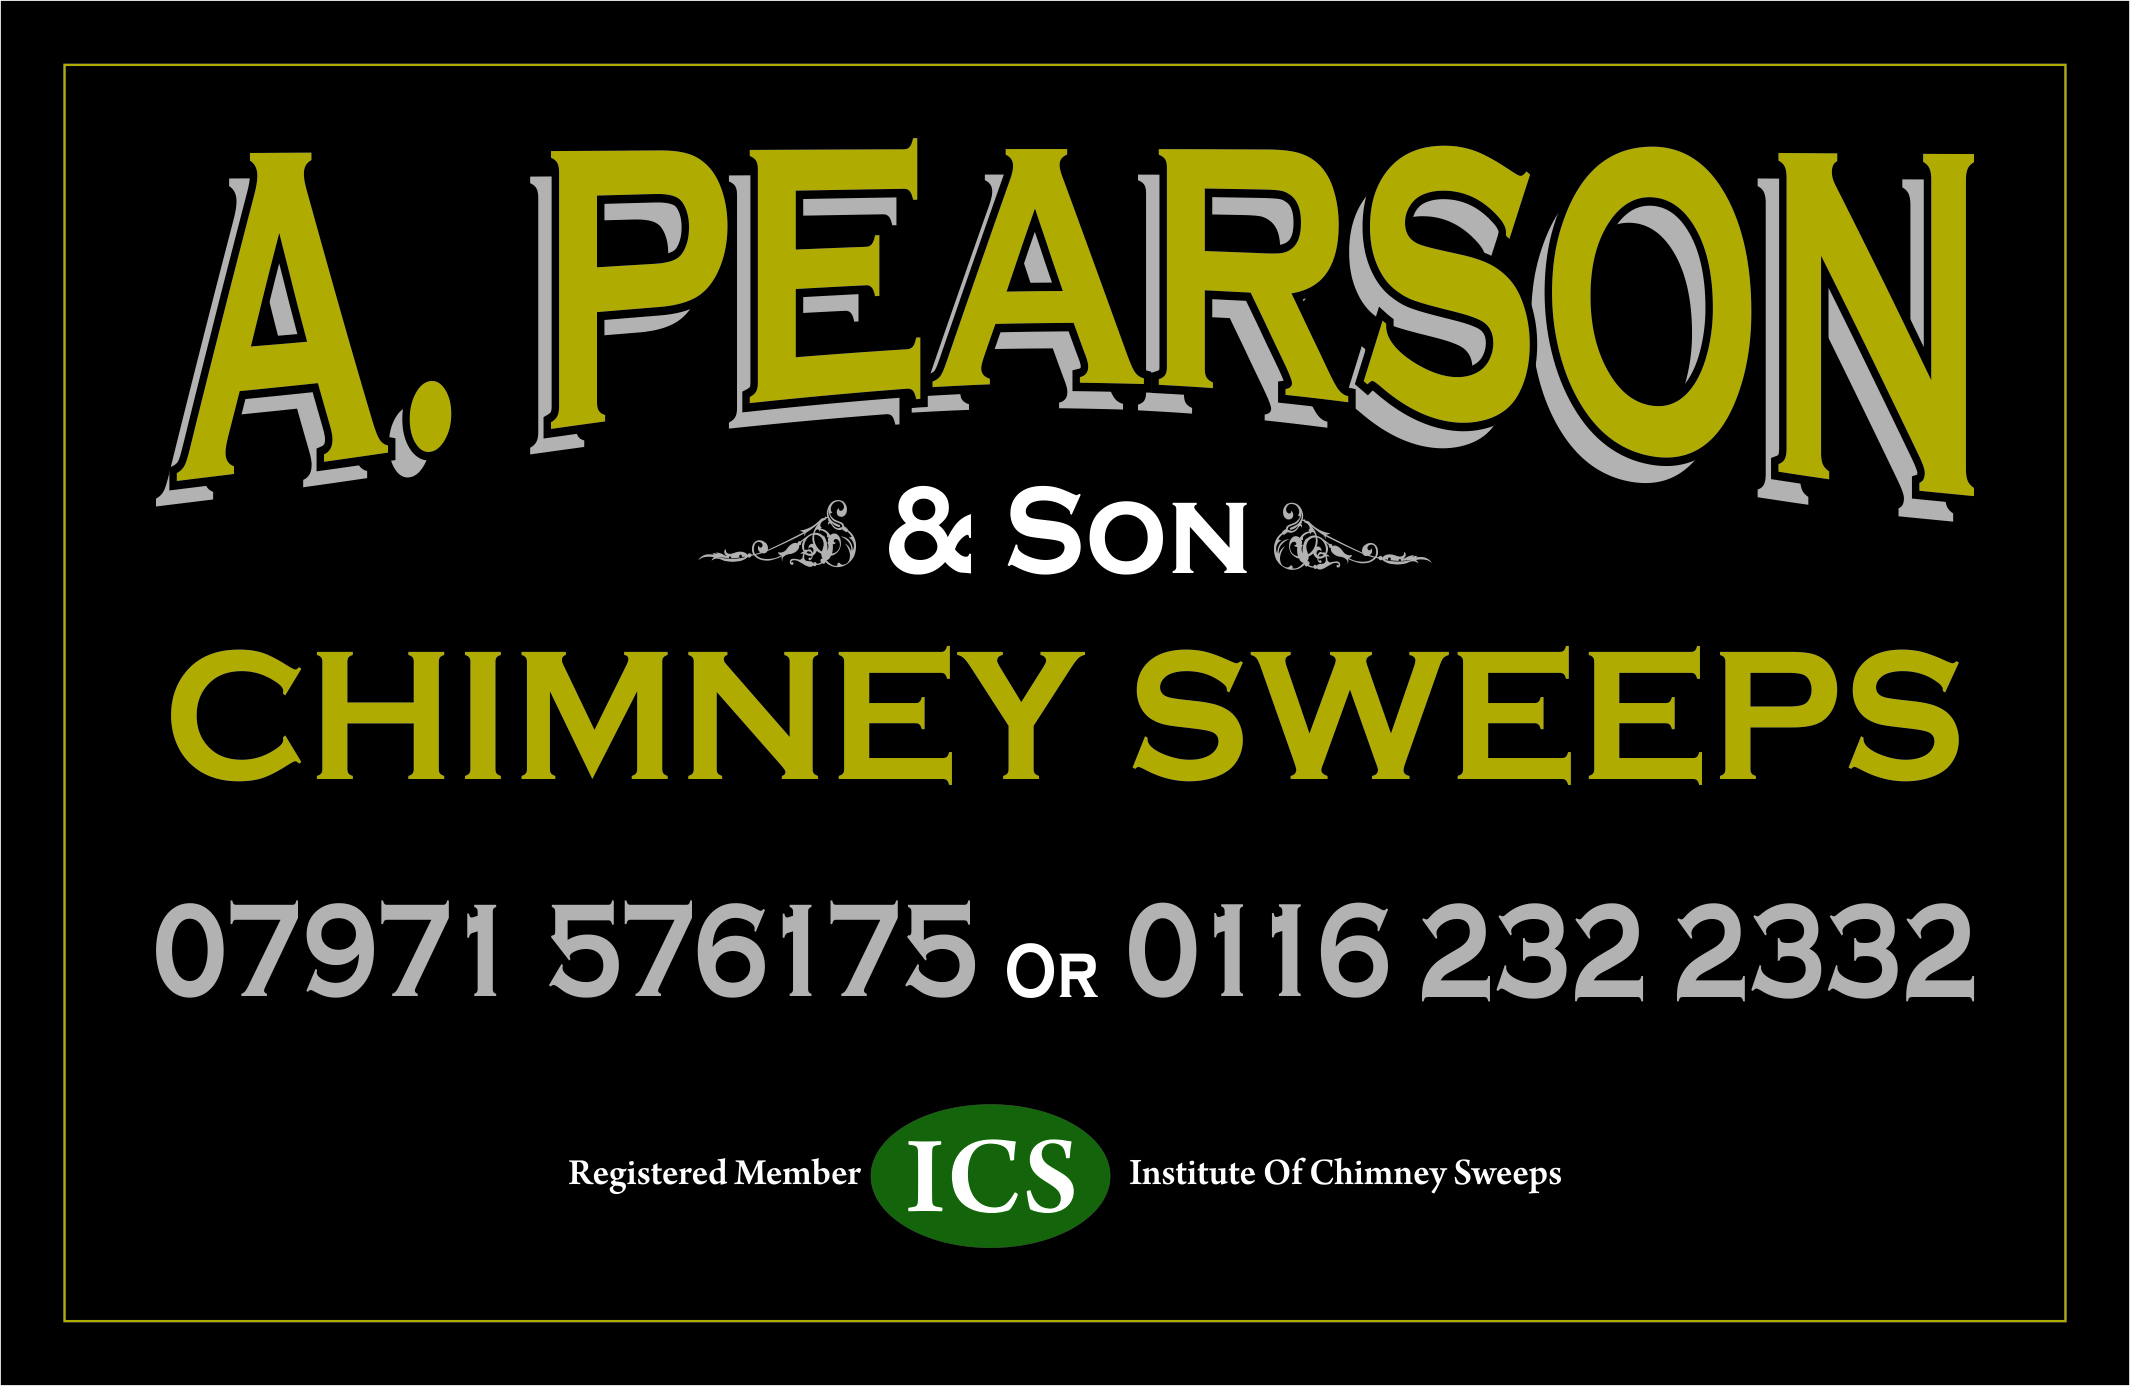 A. PEARSON & SON CHIMNEY SWEEPS LEICESTER